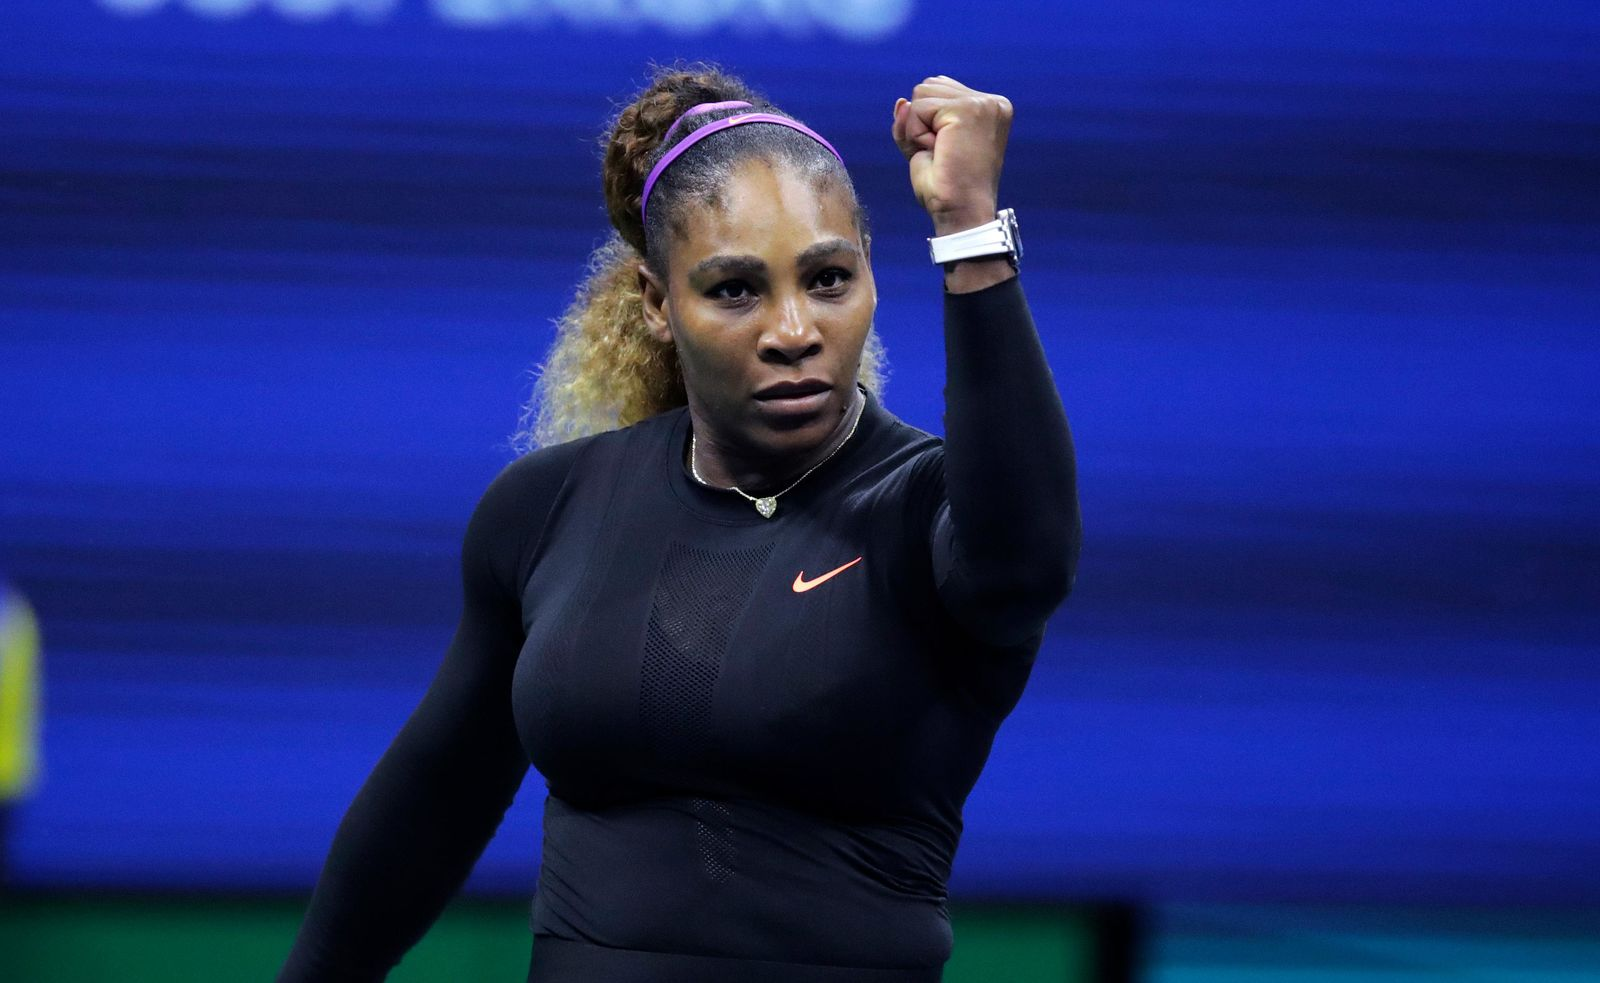 Serena Williams, of the United States, raises her fist after defeating Caty McNally, of the United States, during the second round of the U.S. Open tennis tournament in New York, Wednesday, Aug. 28, 2019. (AP Photo/Charles Krupa)